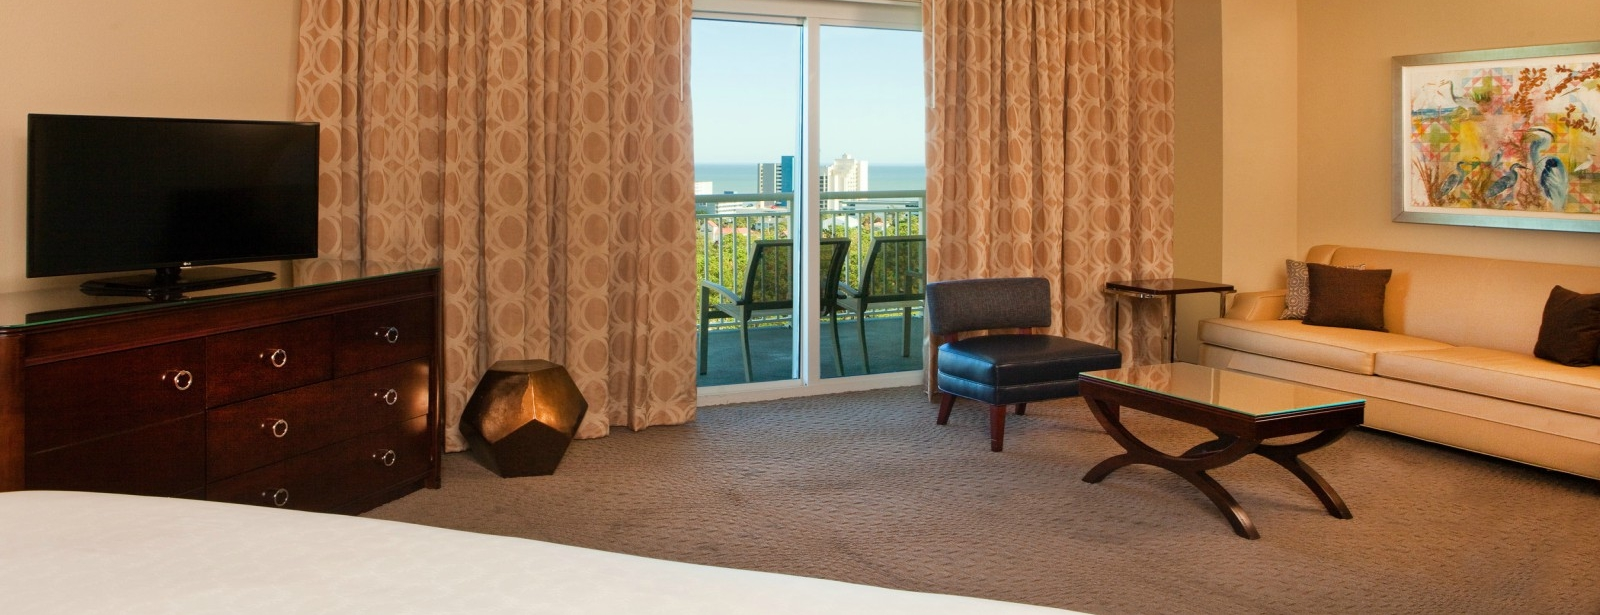 Deluxe Junior Suite | Sheraton Myrtle Beach Convention Center Hotel